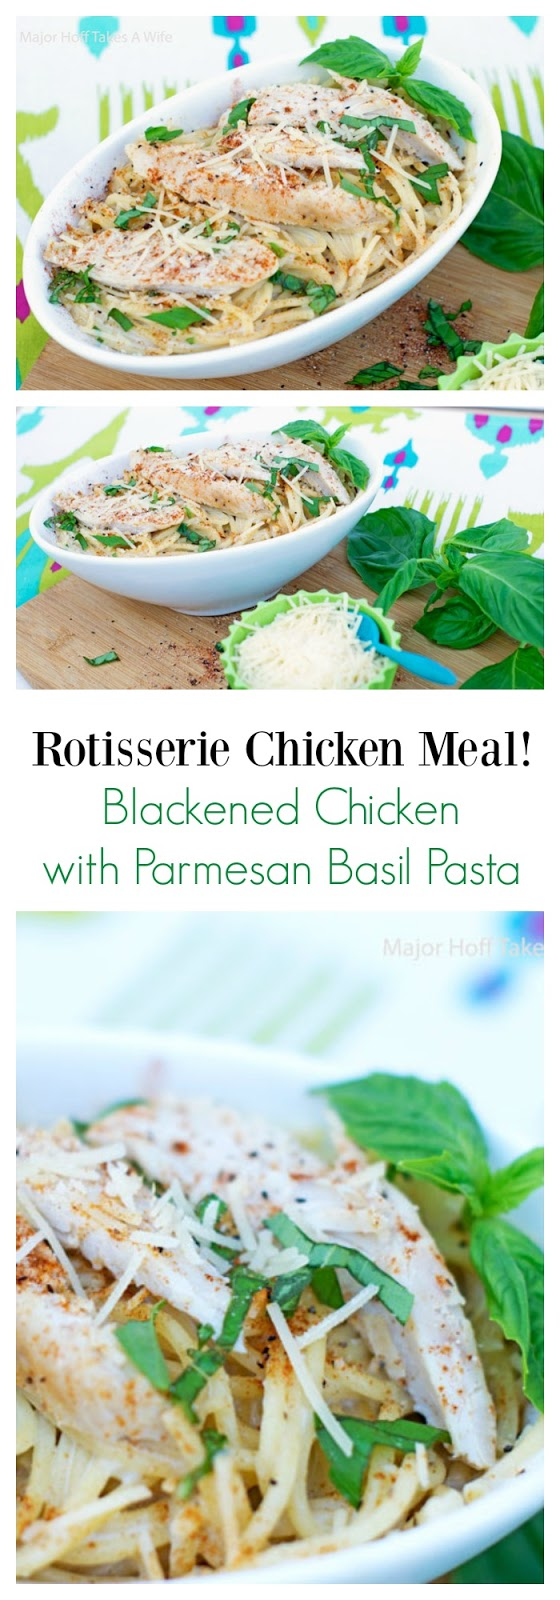 In a hurry to get dinner to the table? Looking for recipes using rotisserie chicken? This chicken rotisserie recipe for parmesan chicken pasta with blackening seasoning in under 30 minutes is just for you! You won't believe how effortless this meal is, especially when you taste it. Be sure to see the secret to getting this from stove to table fast! #EffortlessMeals #Chicken #Under30mins #pasta #ad #CollectiveBias